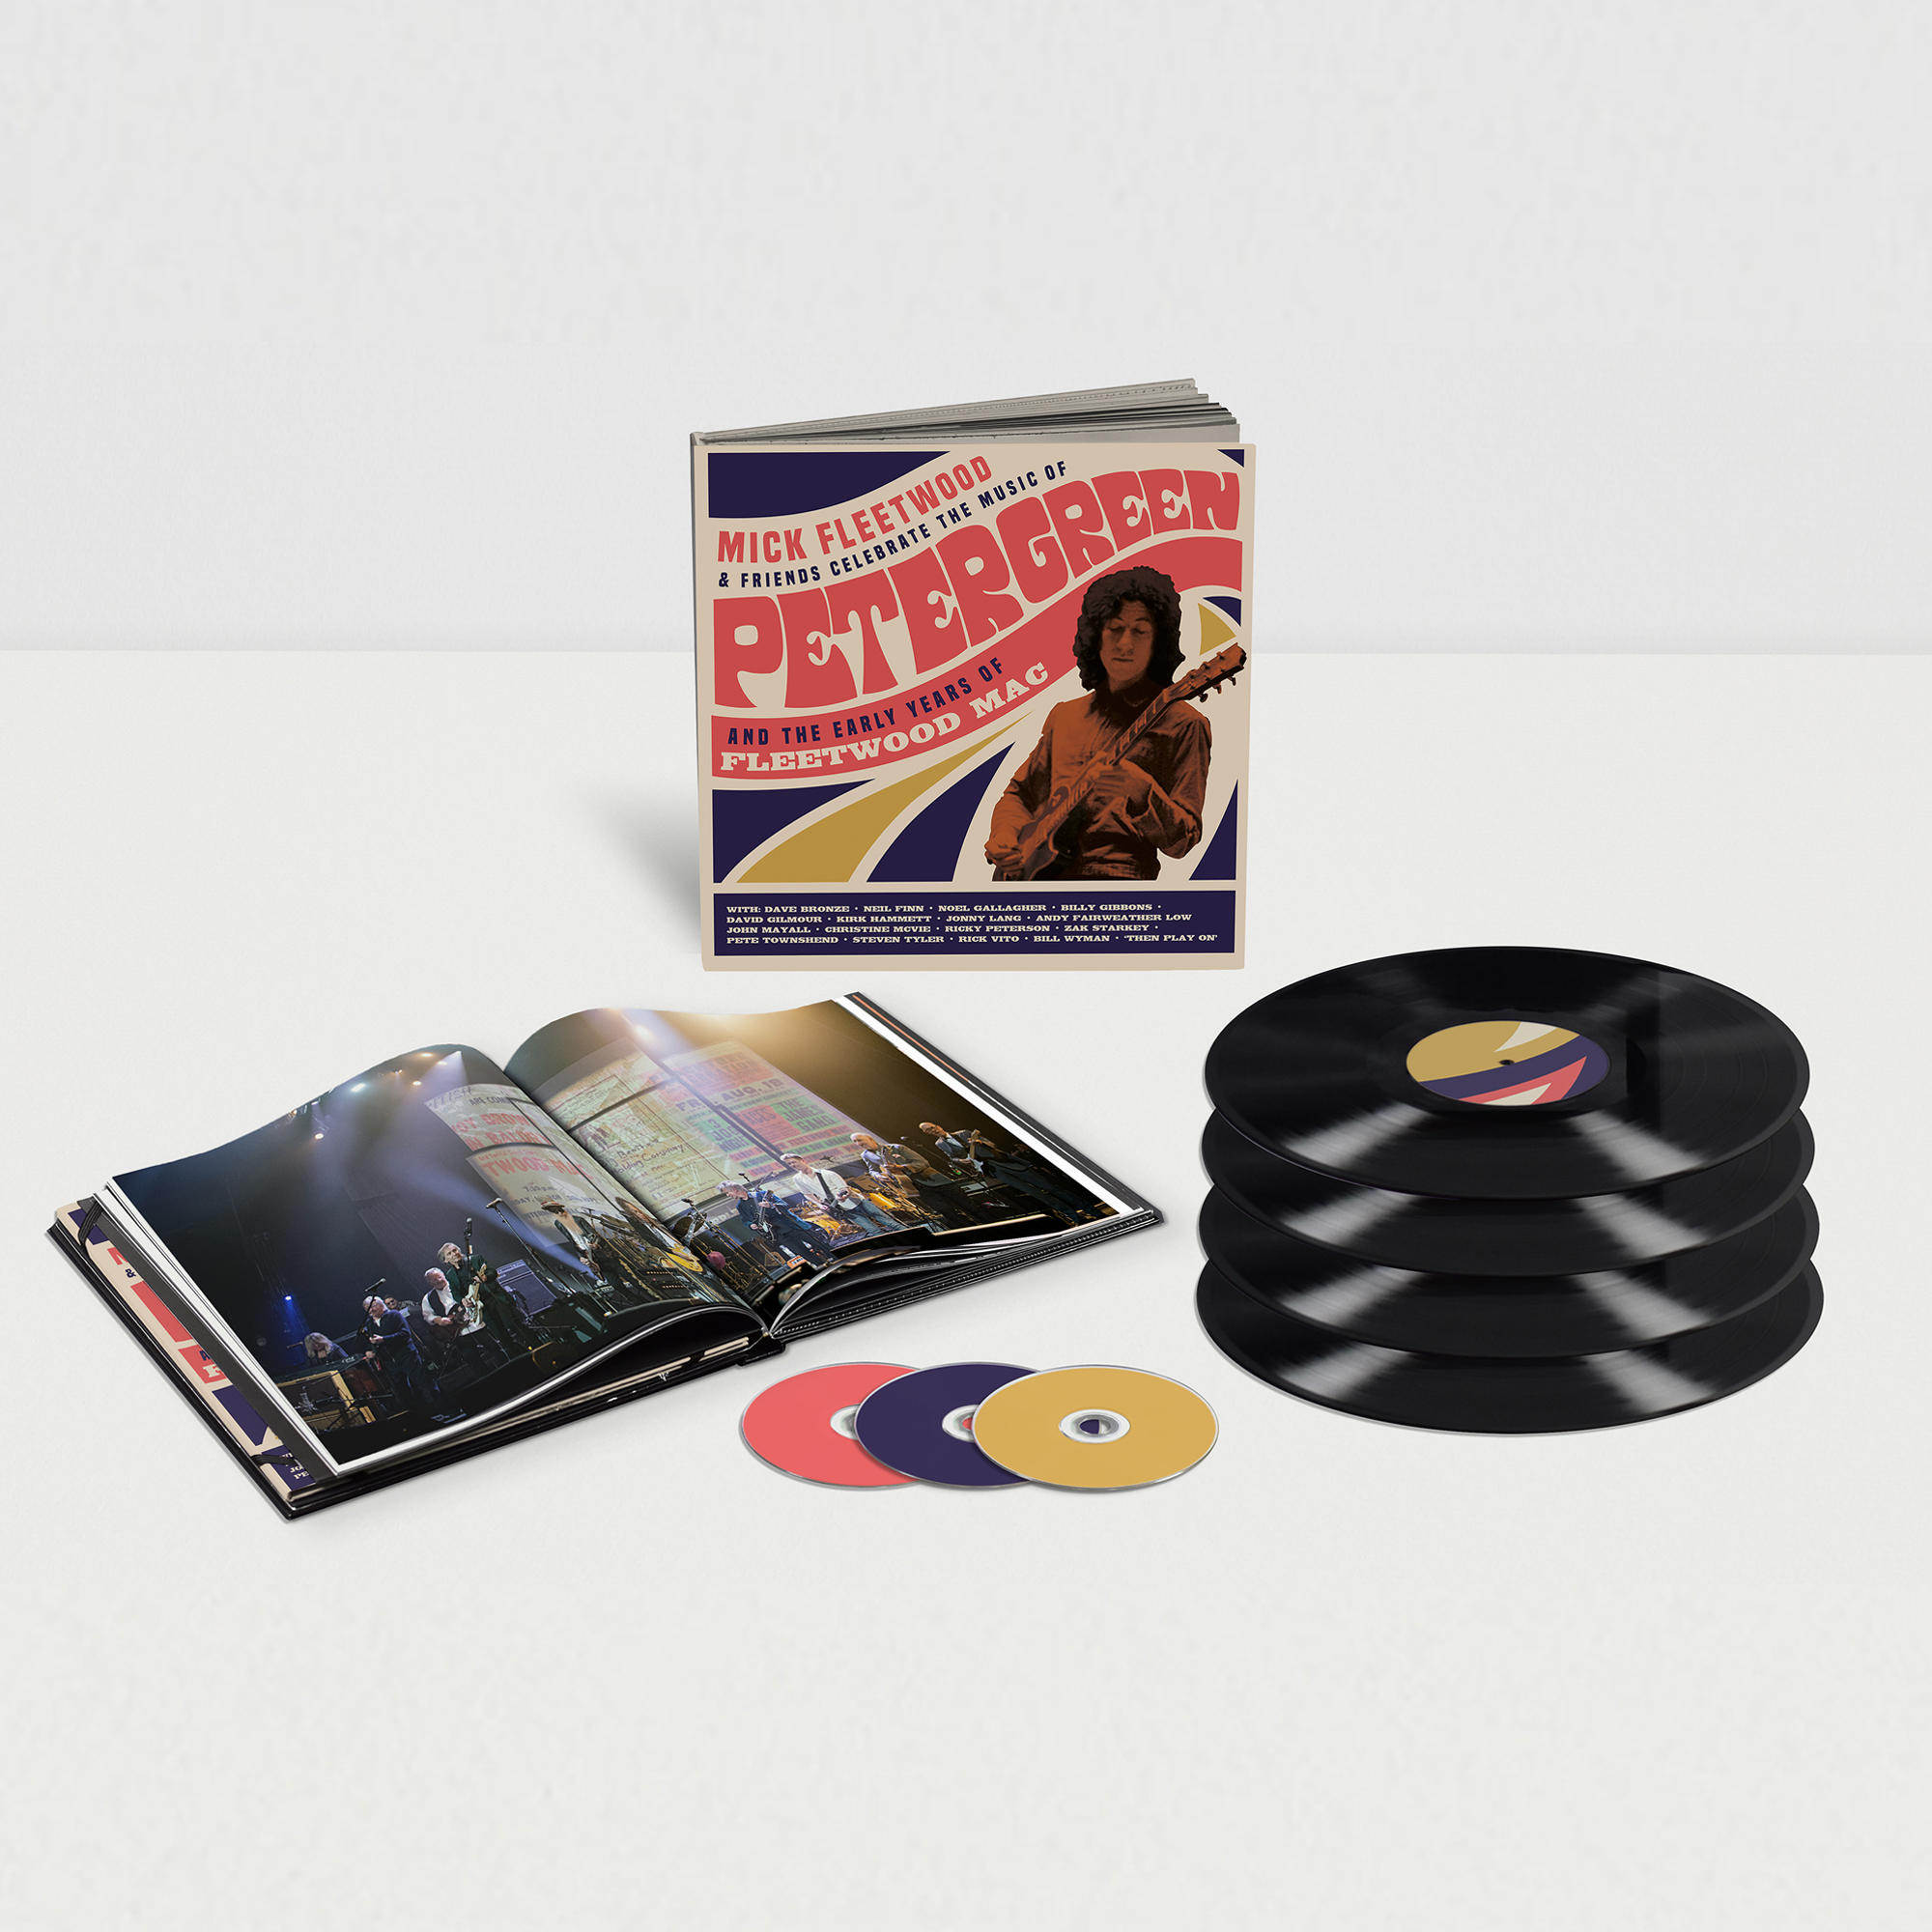 Buy Online Mick Fleetwood & Friends Celebrate The Music Of Peter Green And The Early Years Of Fleetwood Mac - Super Deluxe Edition Box Set